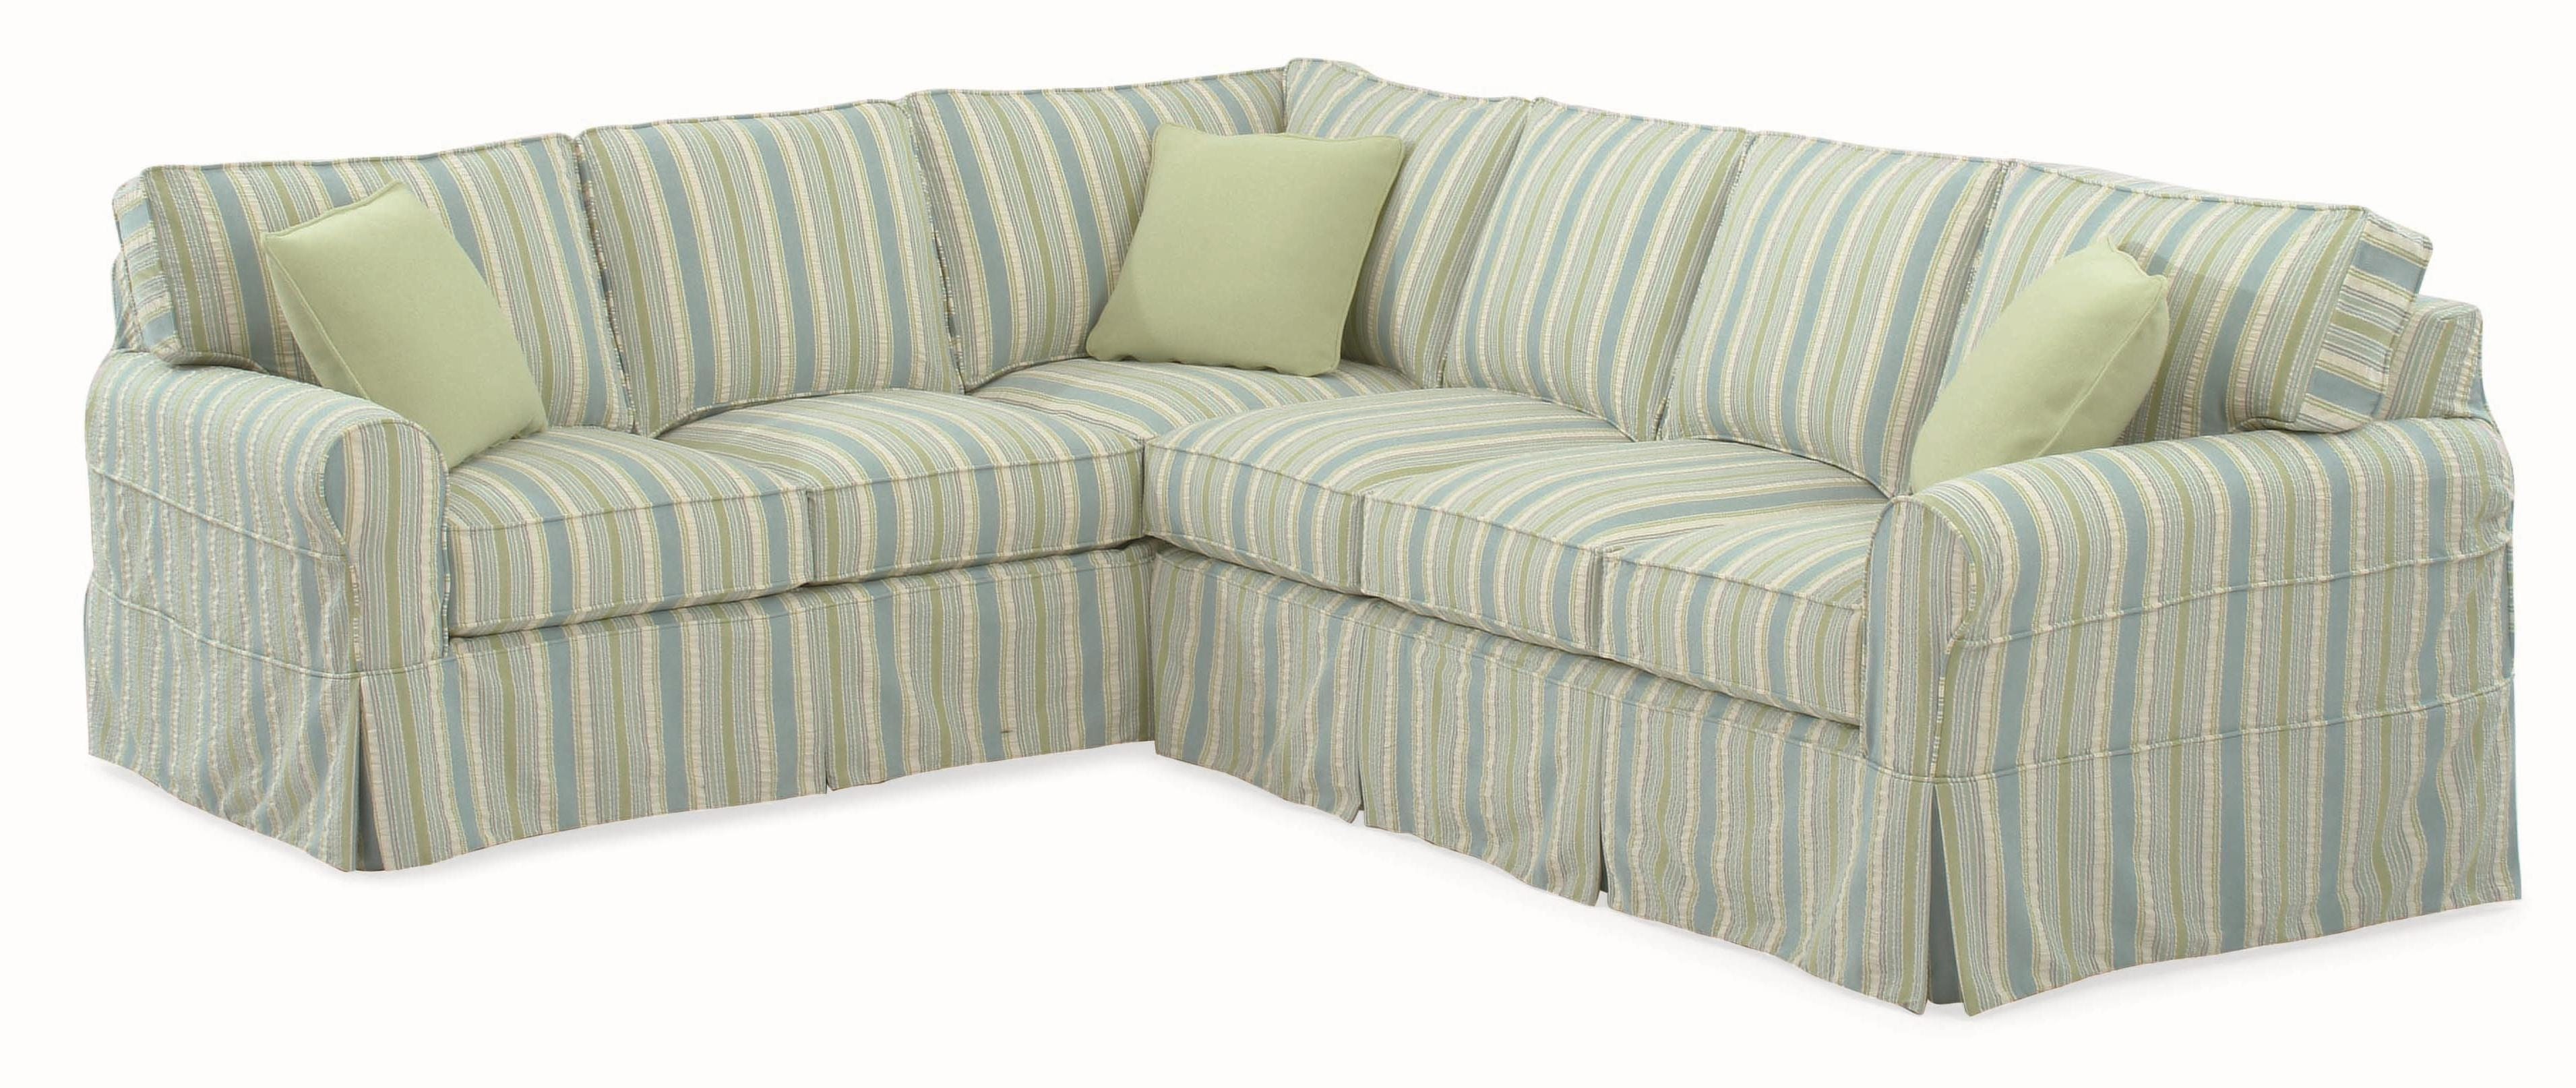 15 photos chaise sectional slipcover sofa ideas for Slipcovers for sectional sofa with chaise